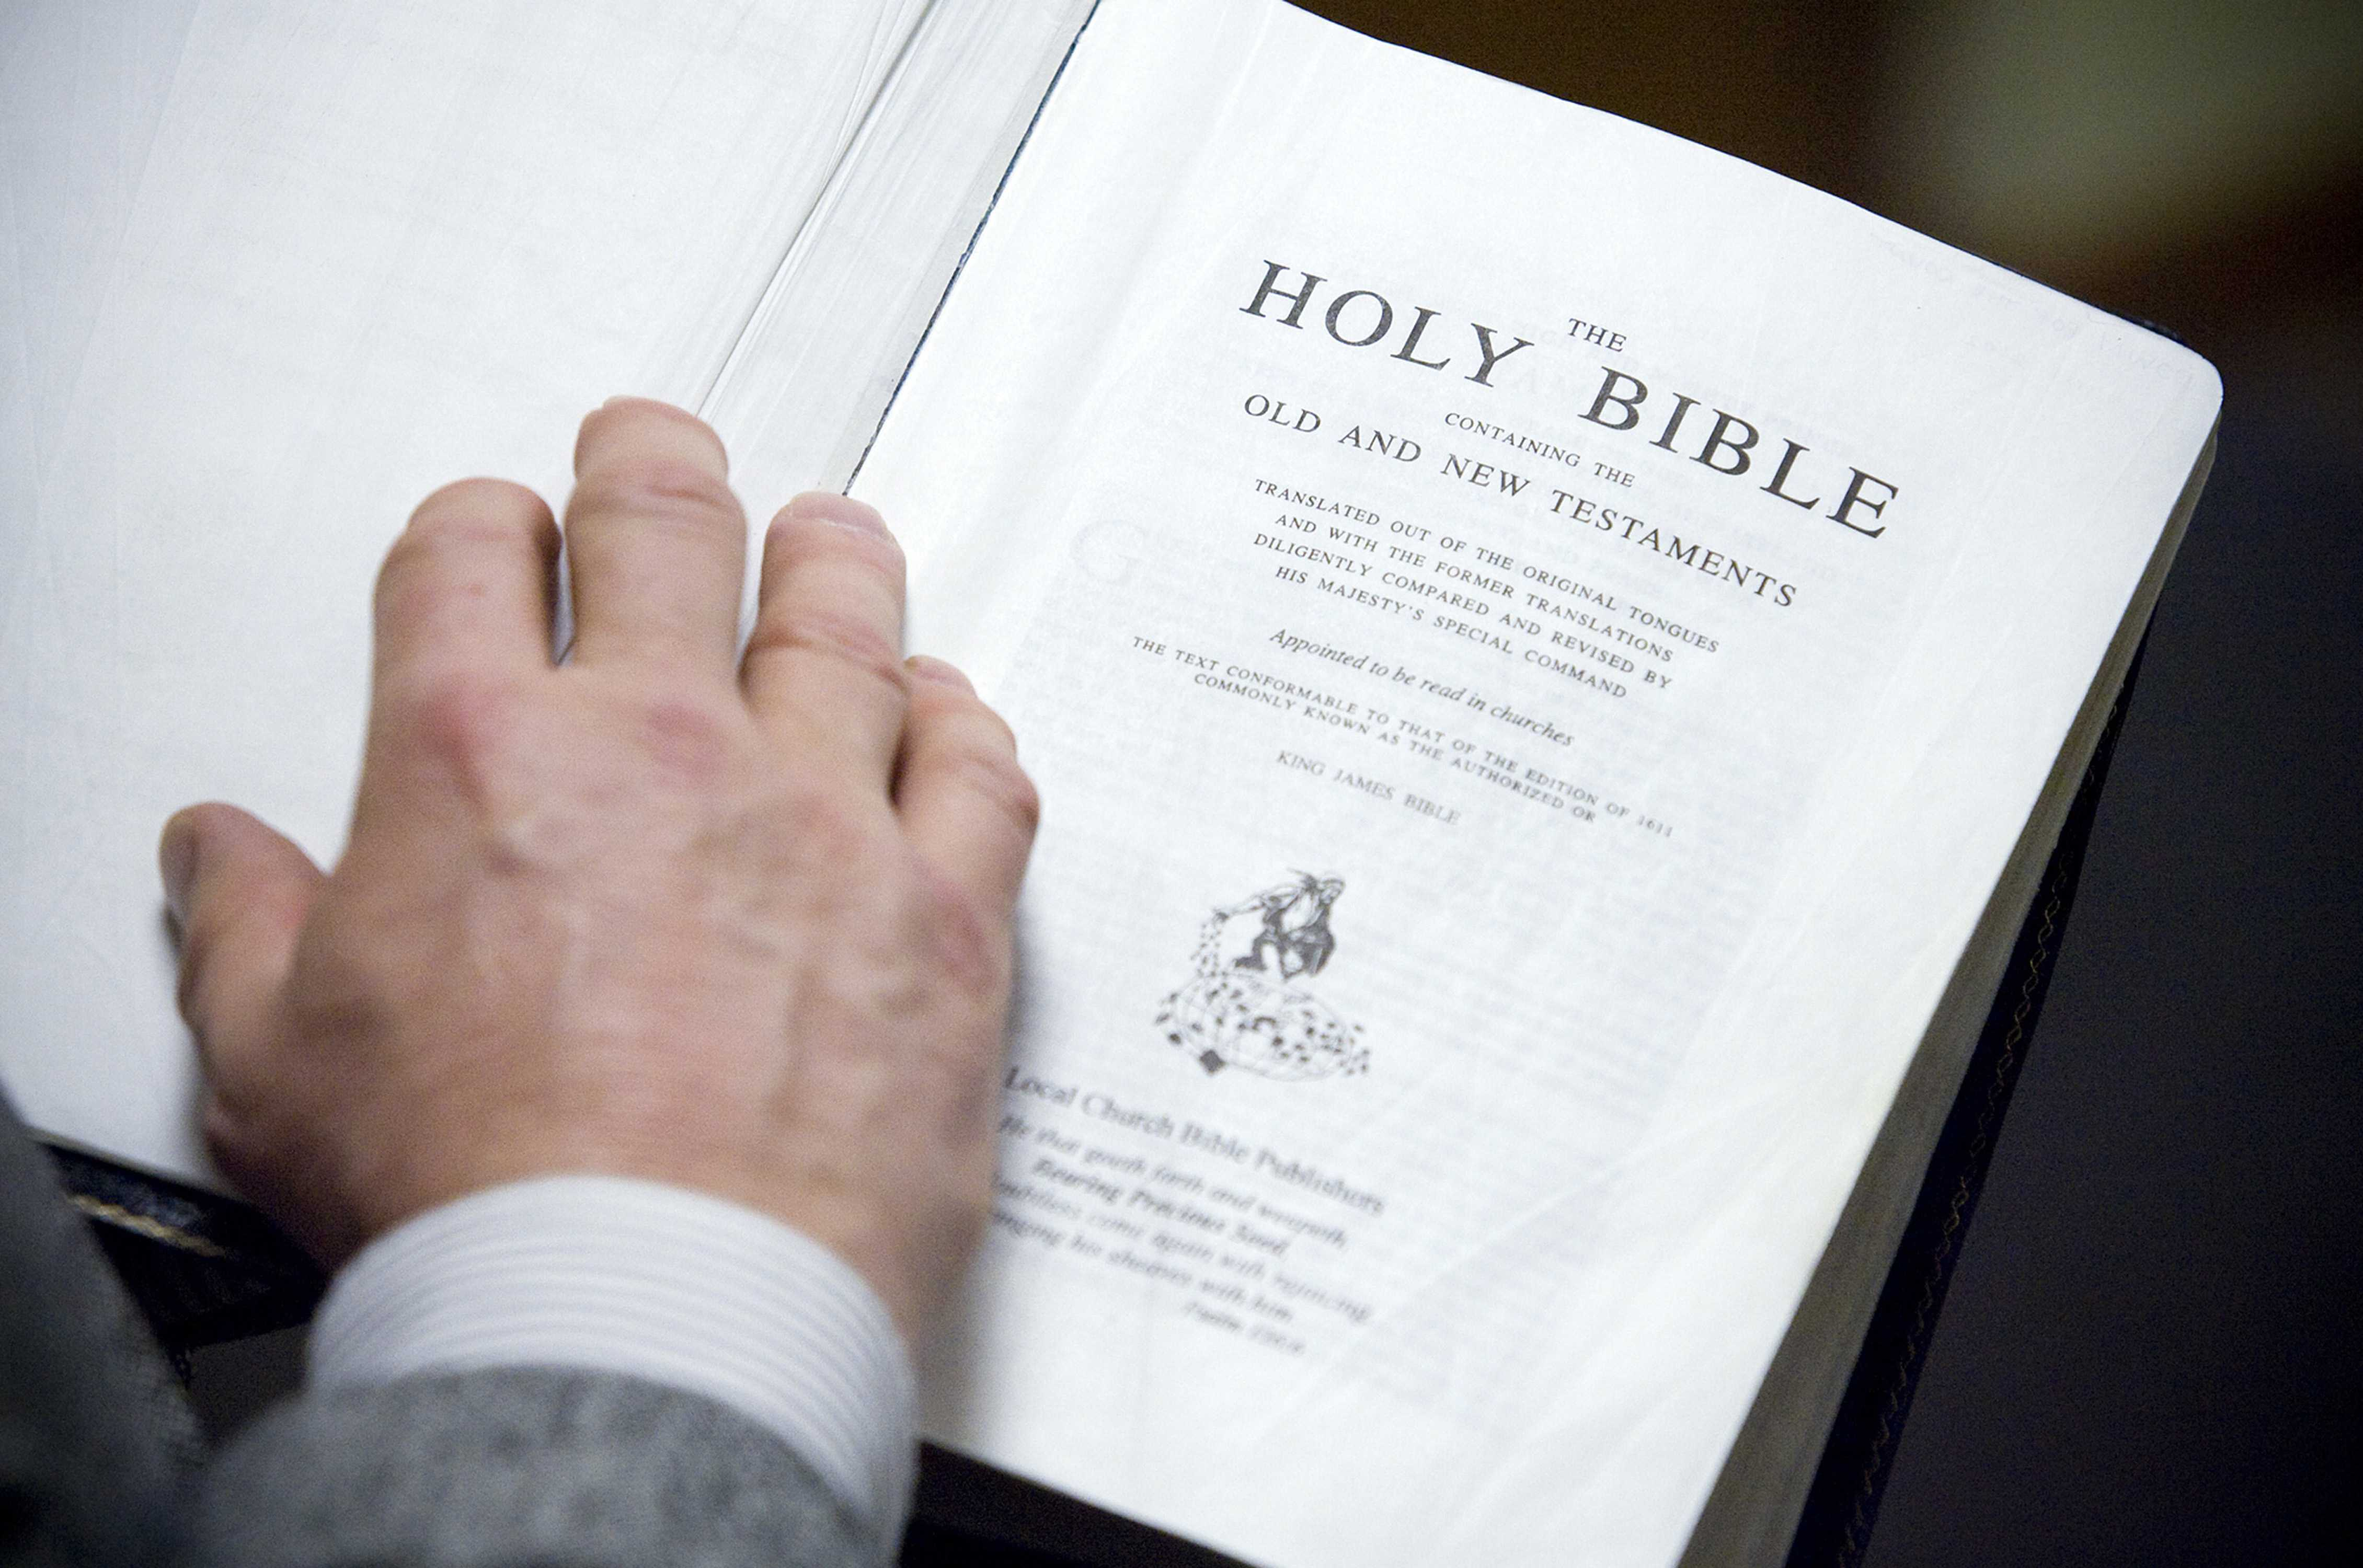 Pastor Chris Huff, of Bible Baptist Church, in Mount Prospect, Illinois, holds his copy of the King James translation of the Bible, March 2, 2011. (Darrell Goemaat/Chicago Tribune/TNS)